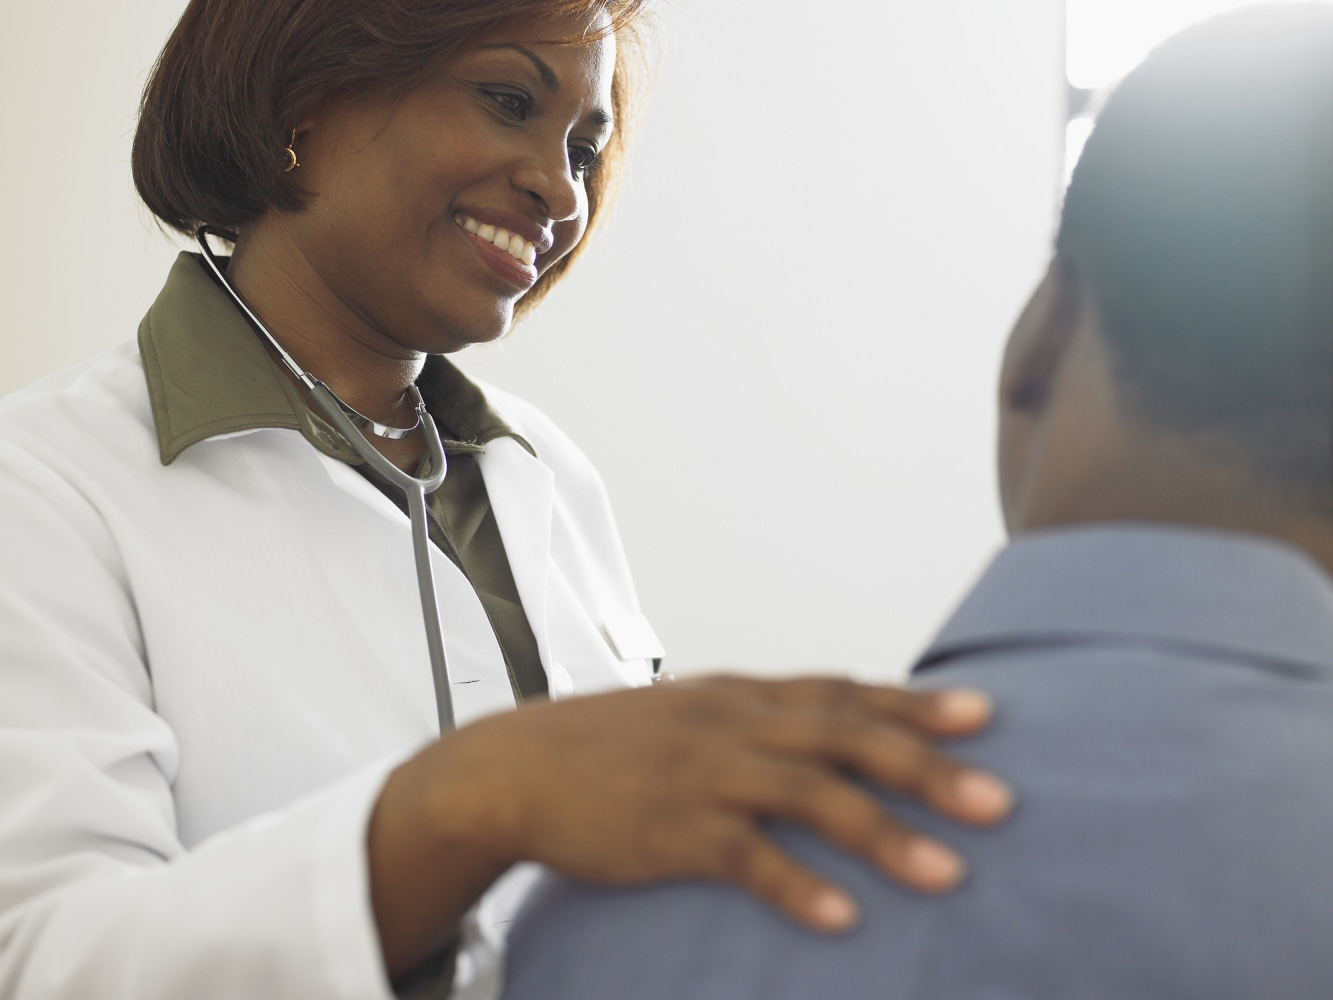 Female Doctors Outperform Male Doctors, According To Study -7077